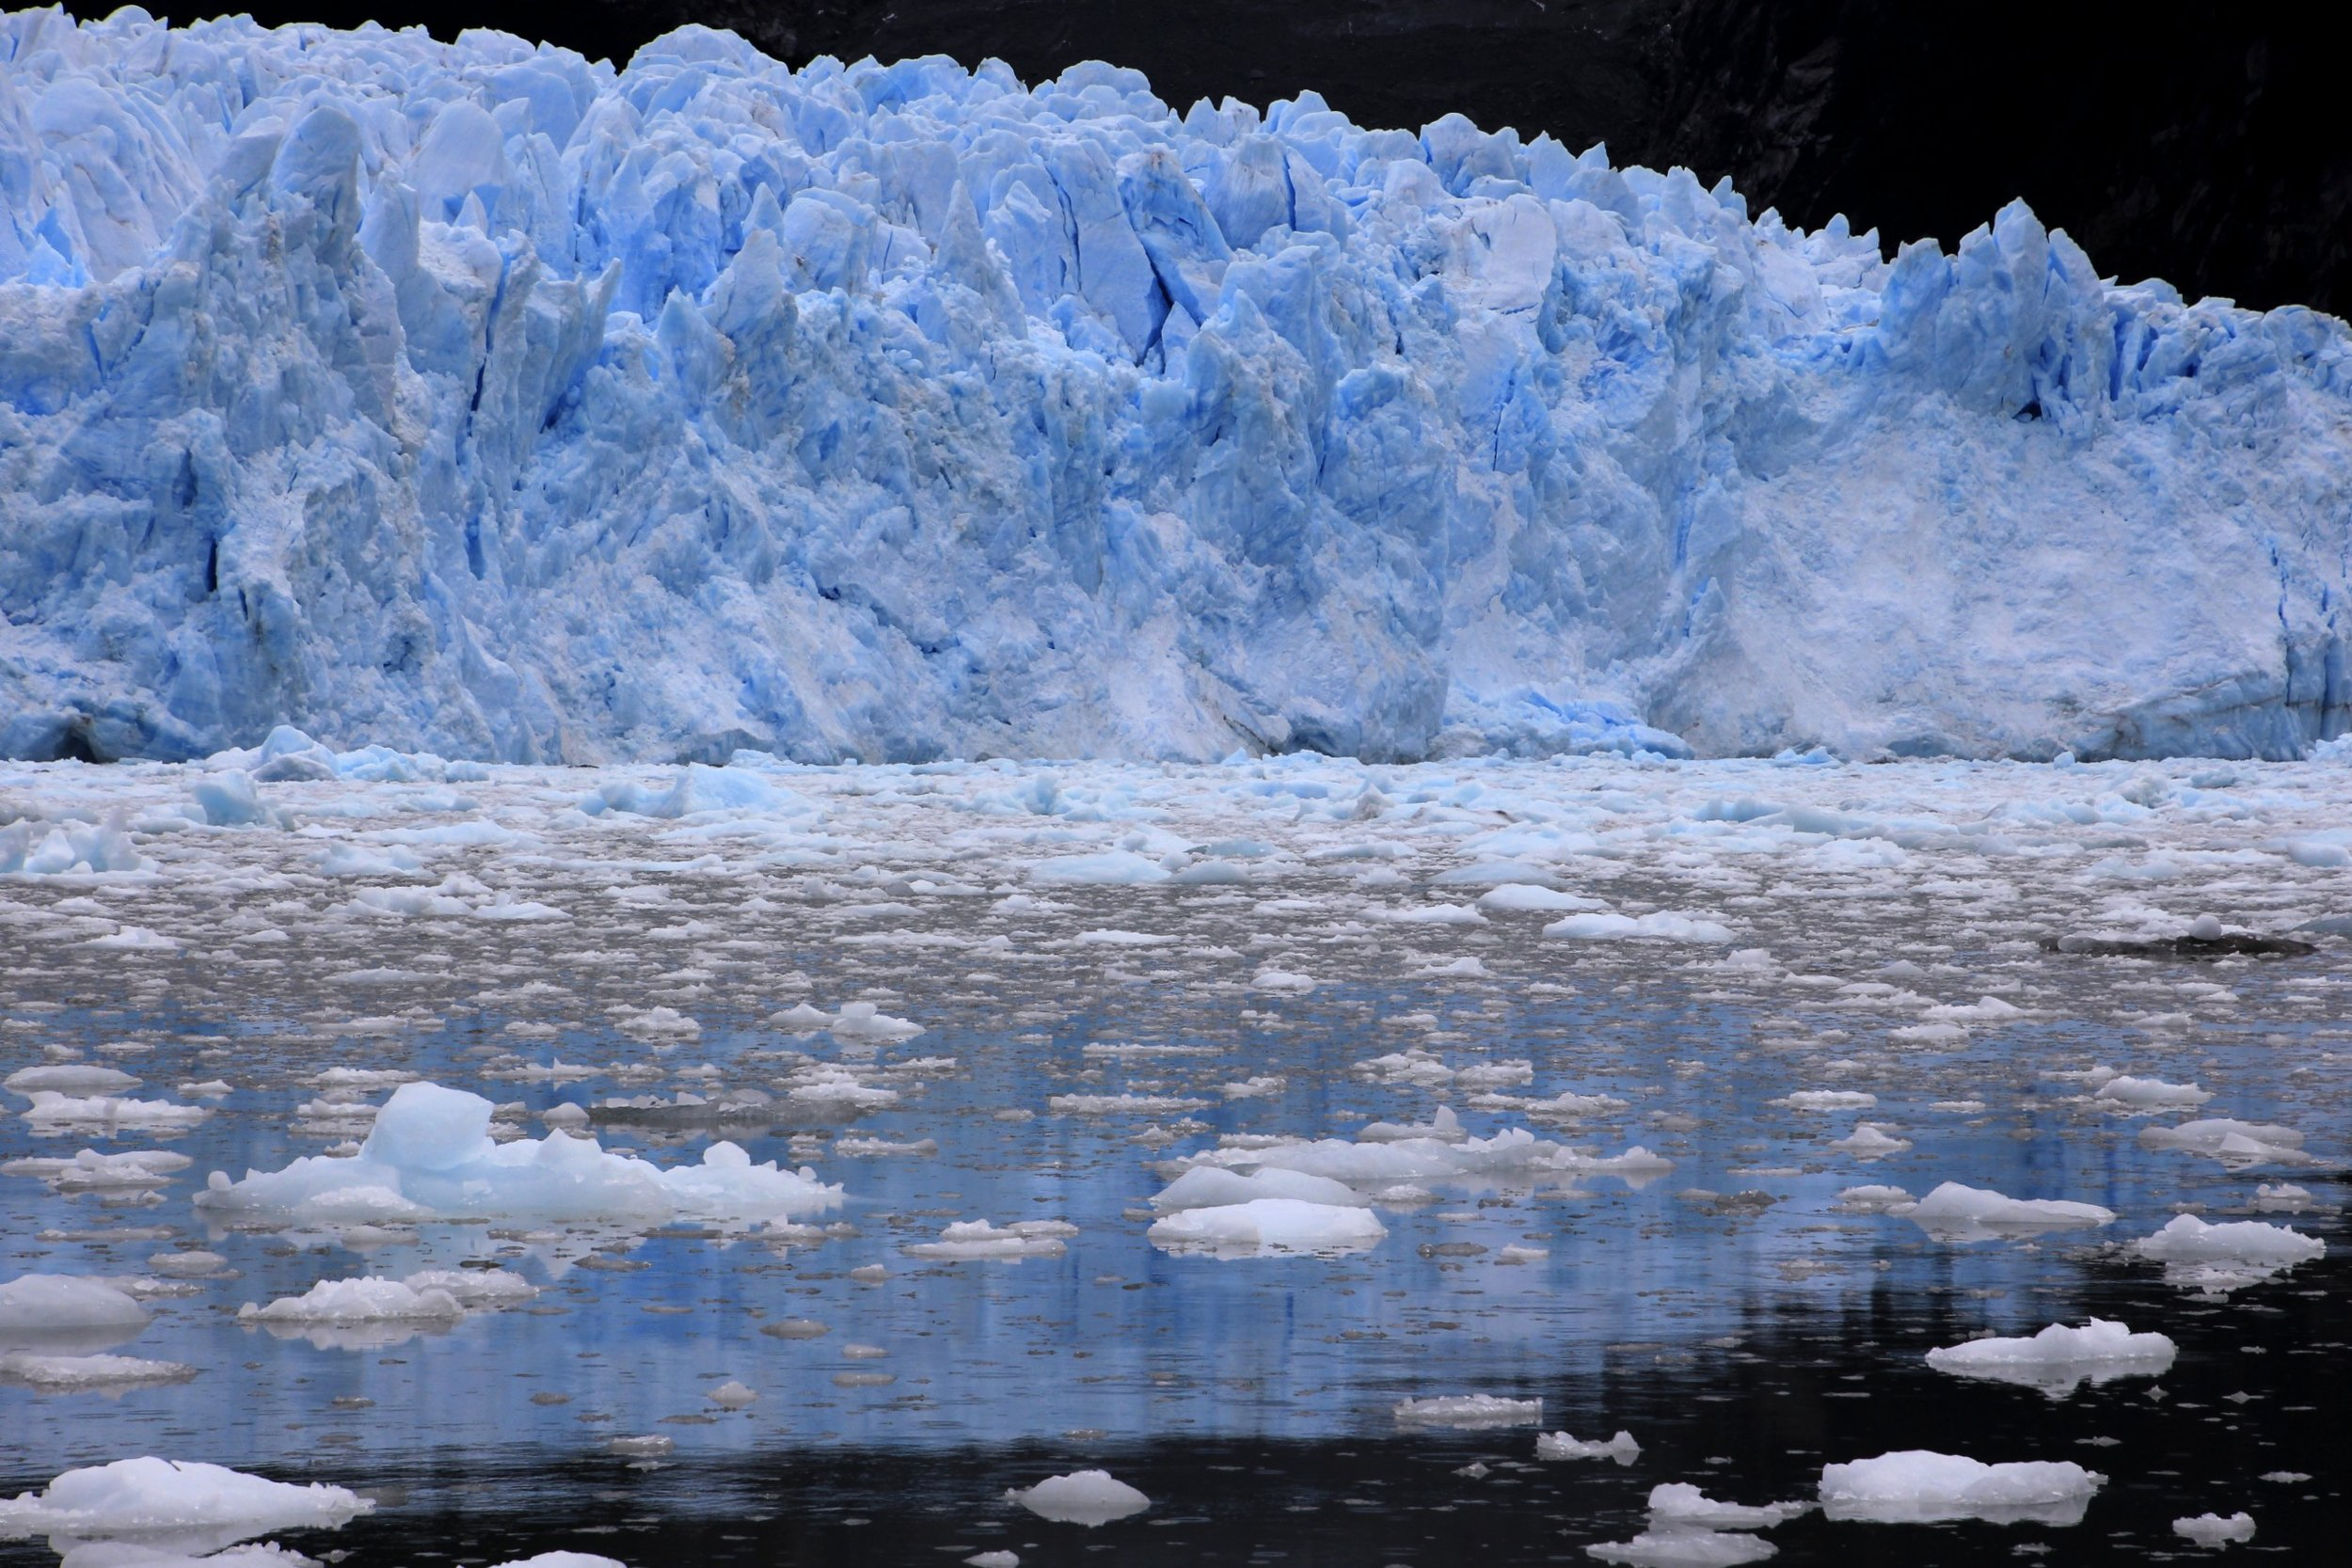 The spectacular glacier in one of the fjords of the Tierra del Fuego